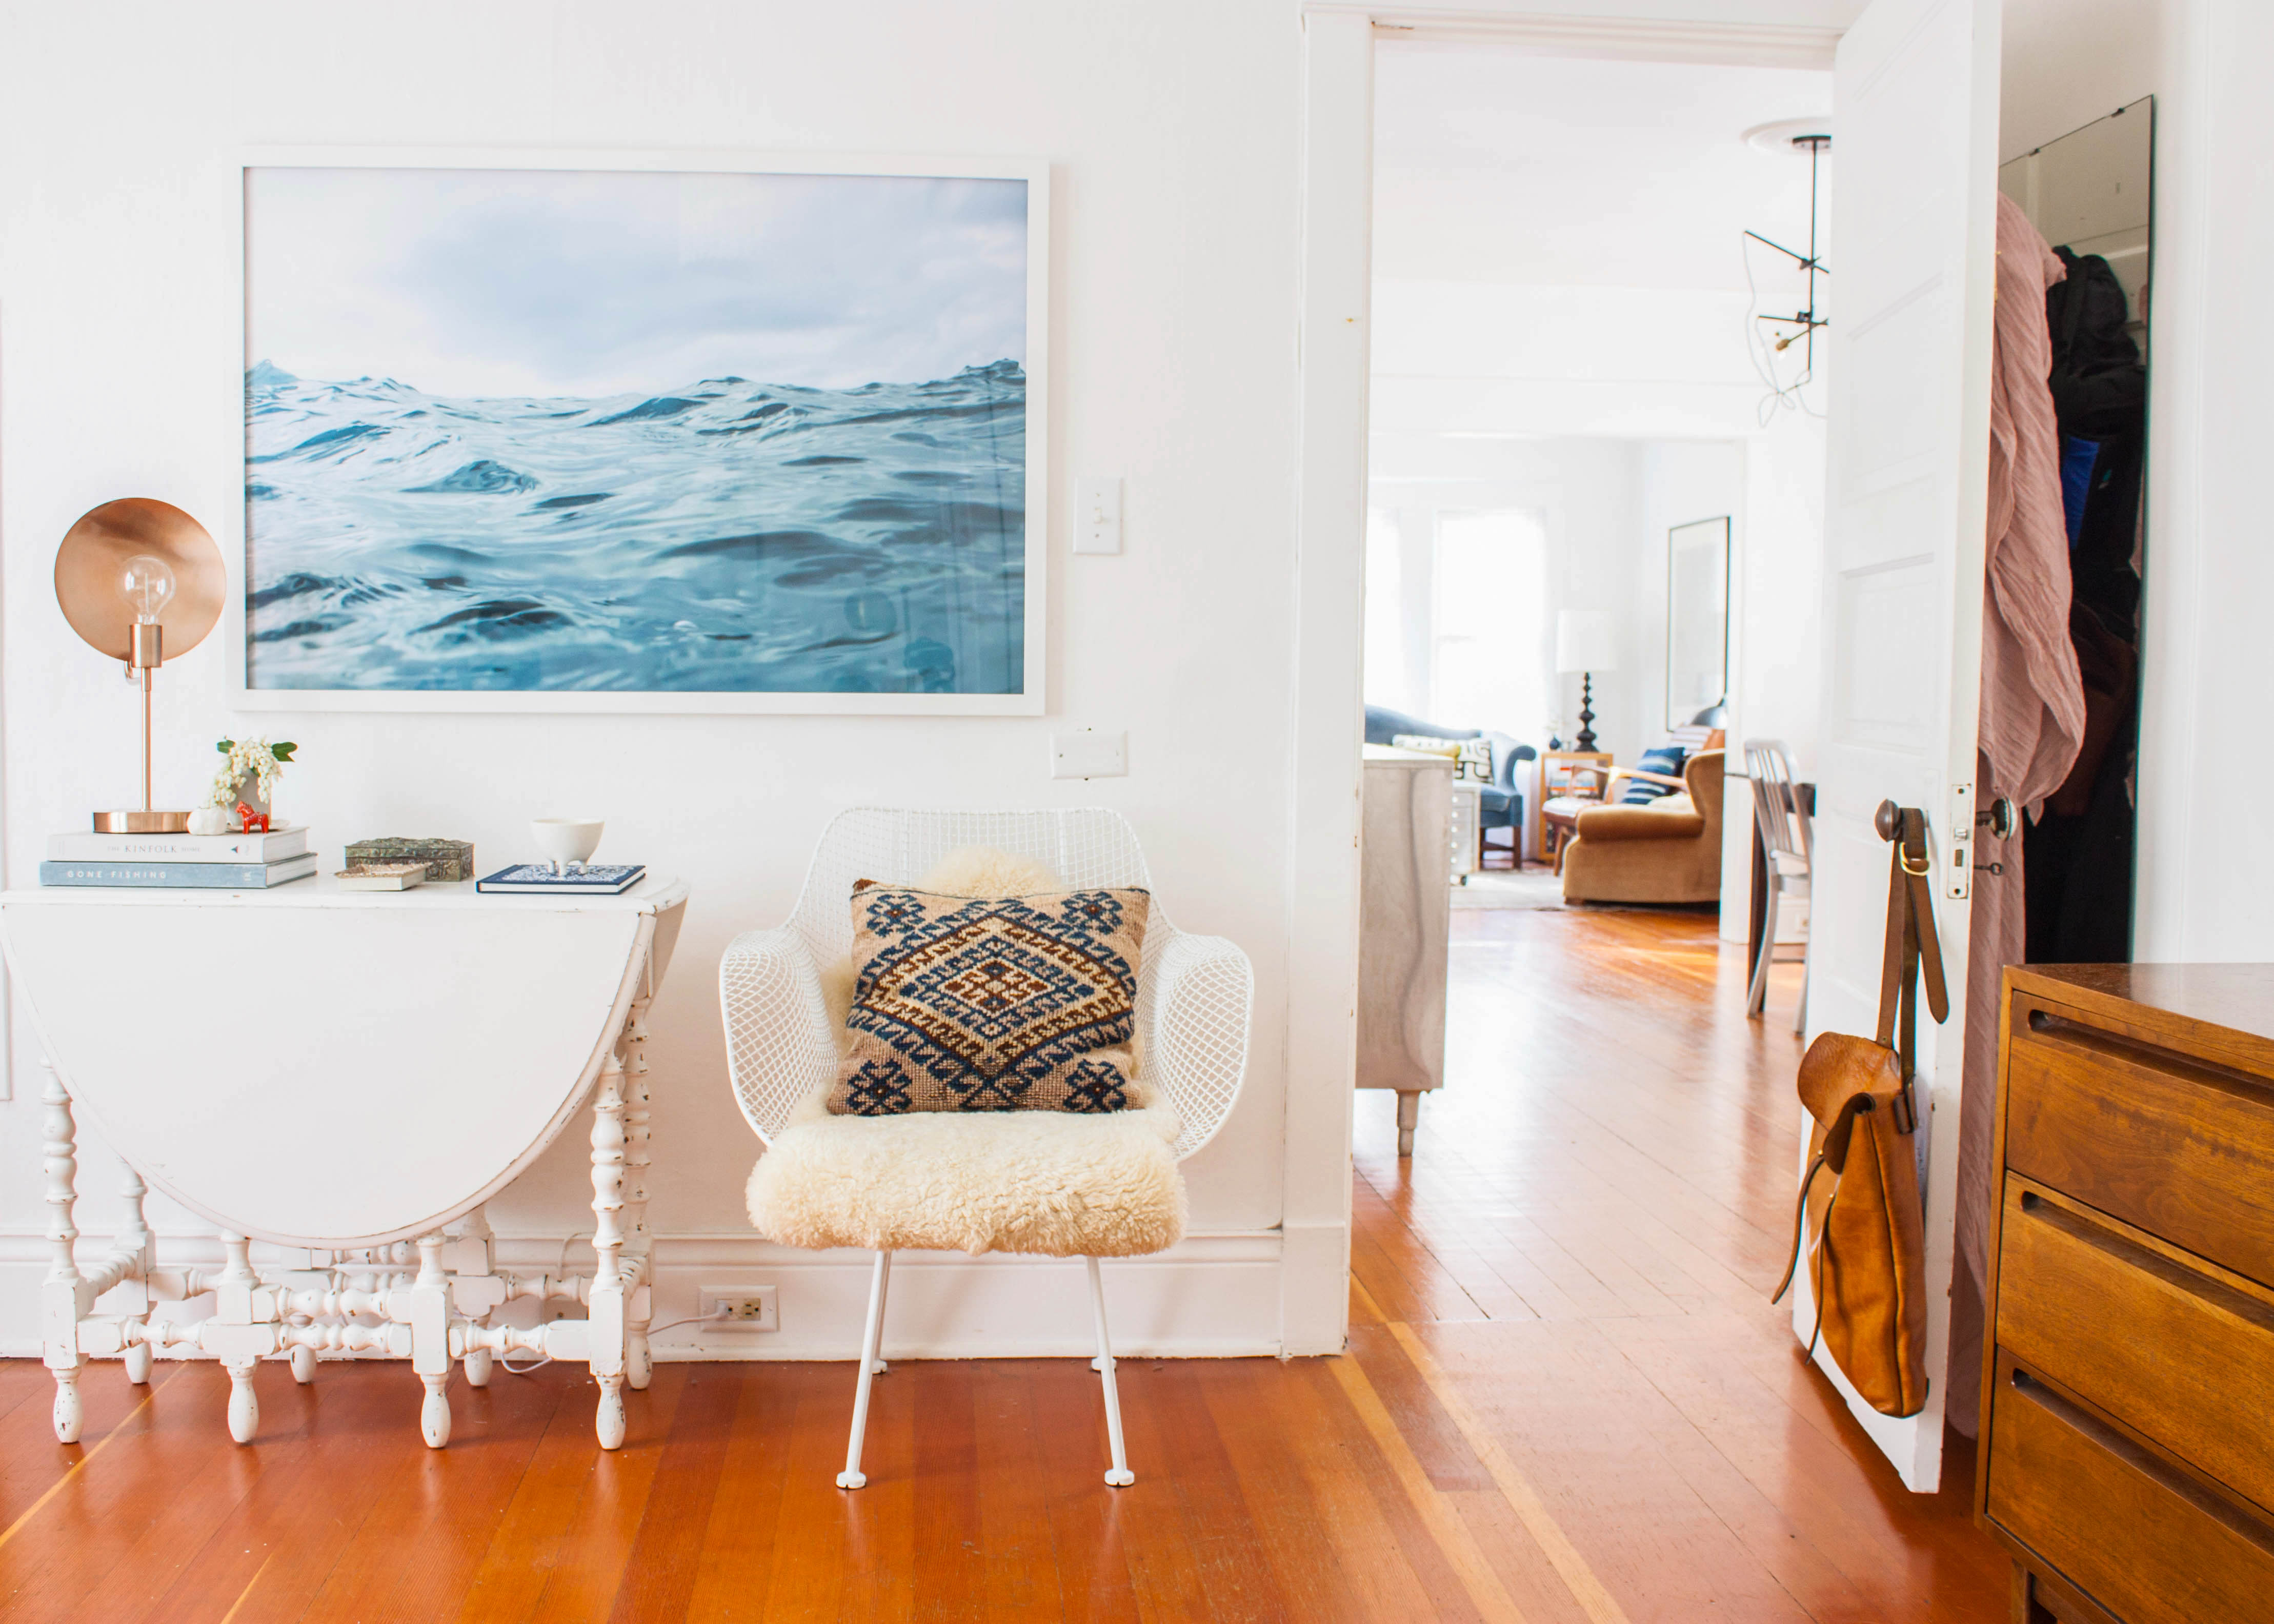 How To Hang A Picture - Wall Art Tips, Video   Apartment Therapy